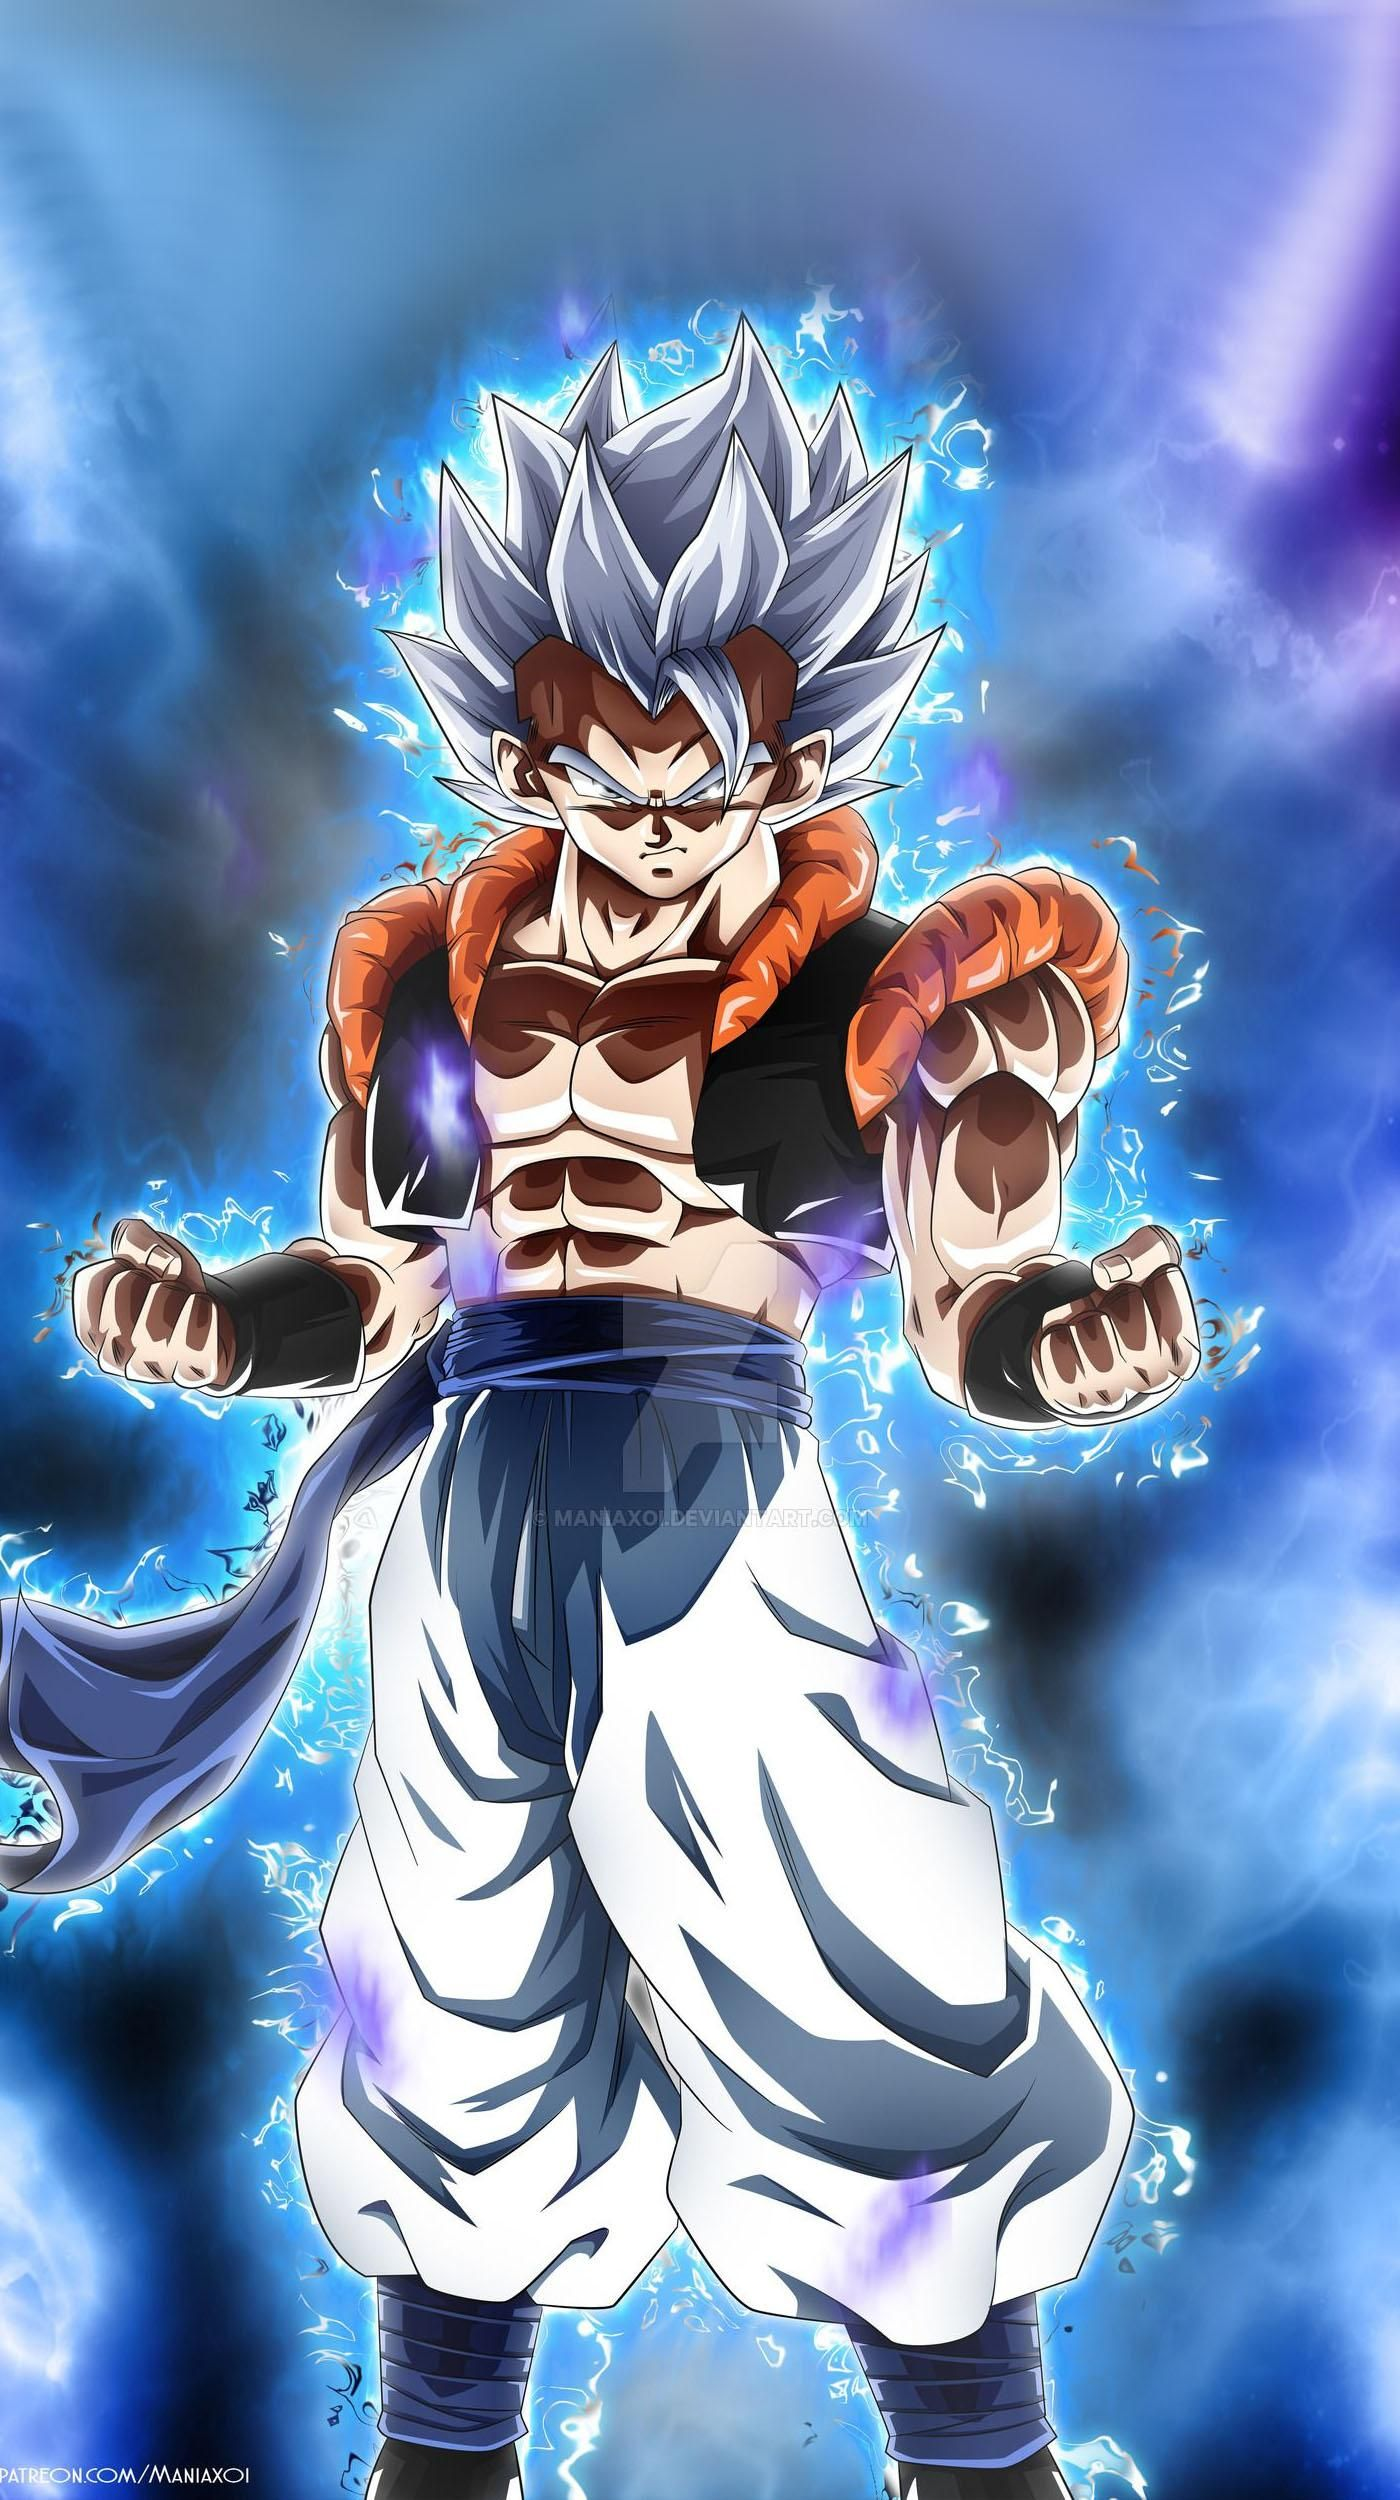 Moving Dragon Ball Super Live Wallpaper Iphone